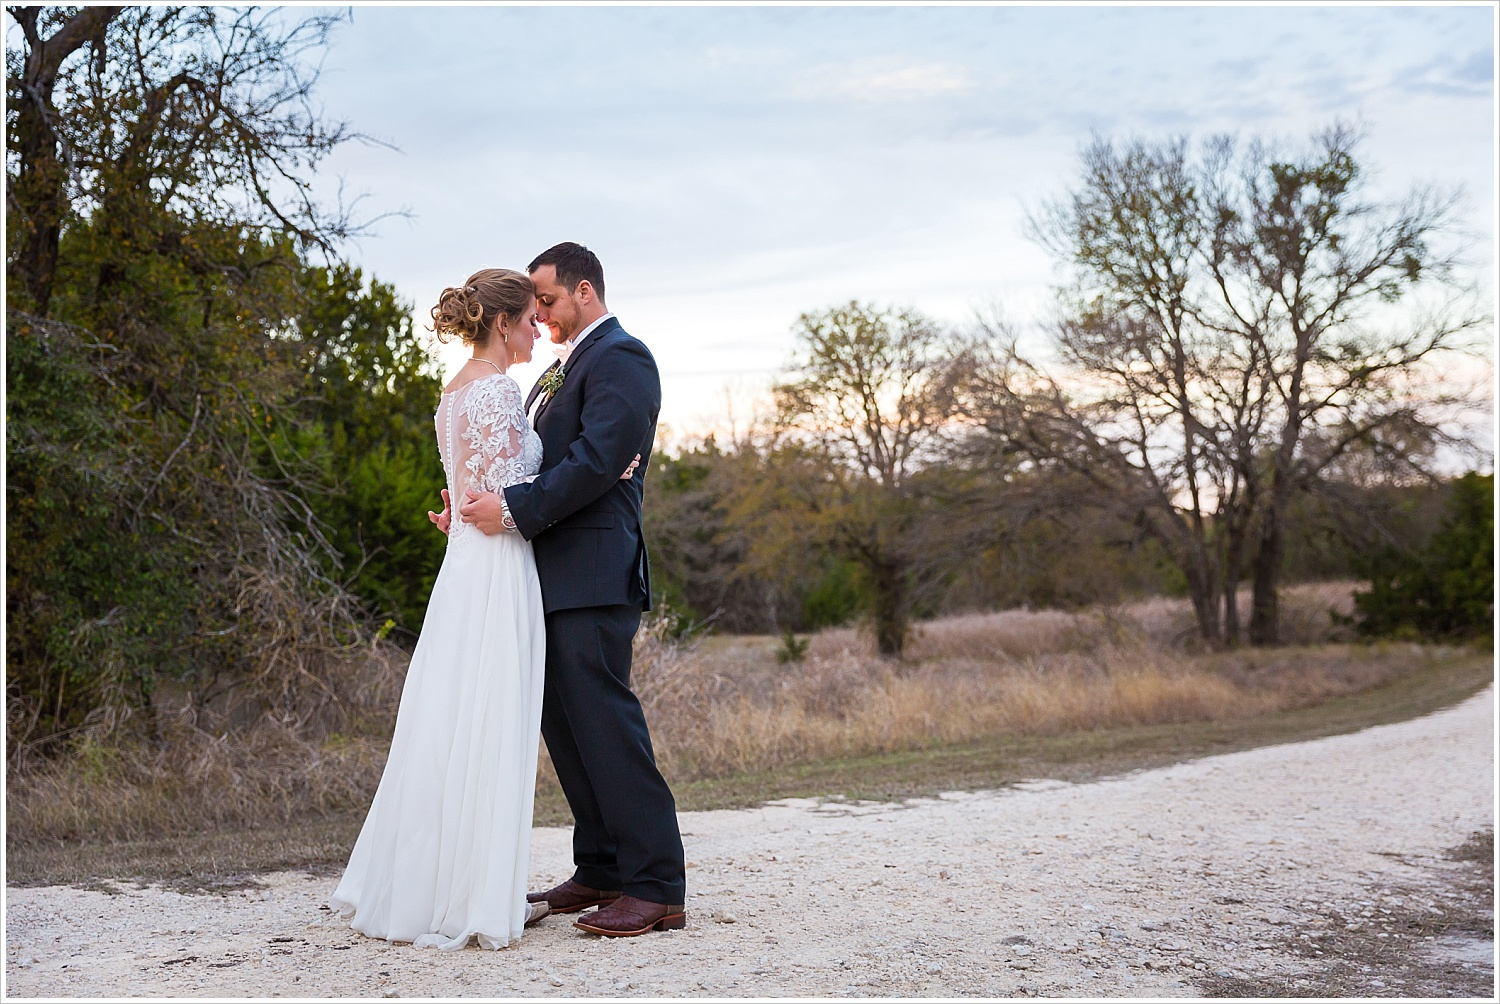 A bride and groom embrace with a Texas Sunset behind them at Bear Creek in Gatesville, TX - Jason & Melaina Photography - www.jasonandmelaina.com